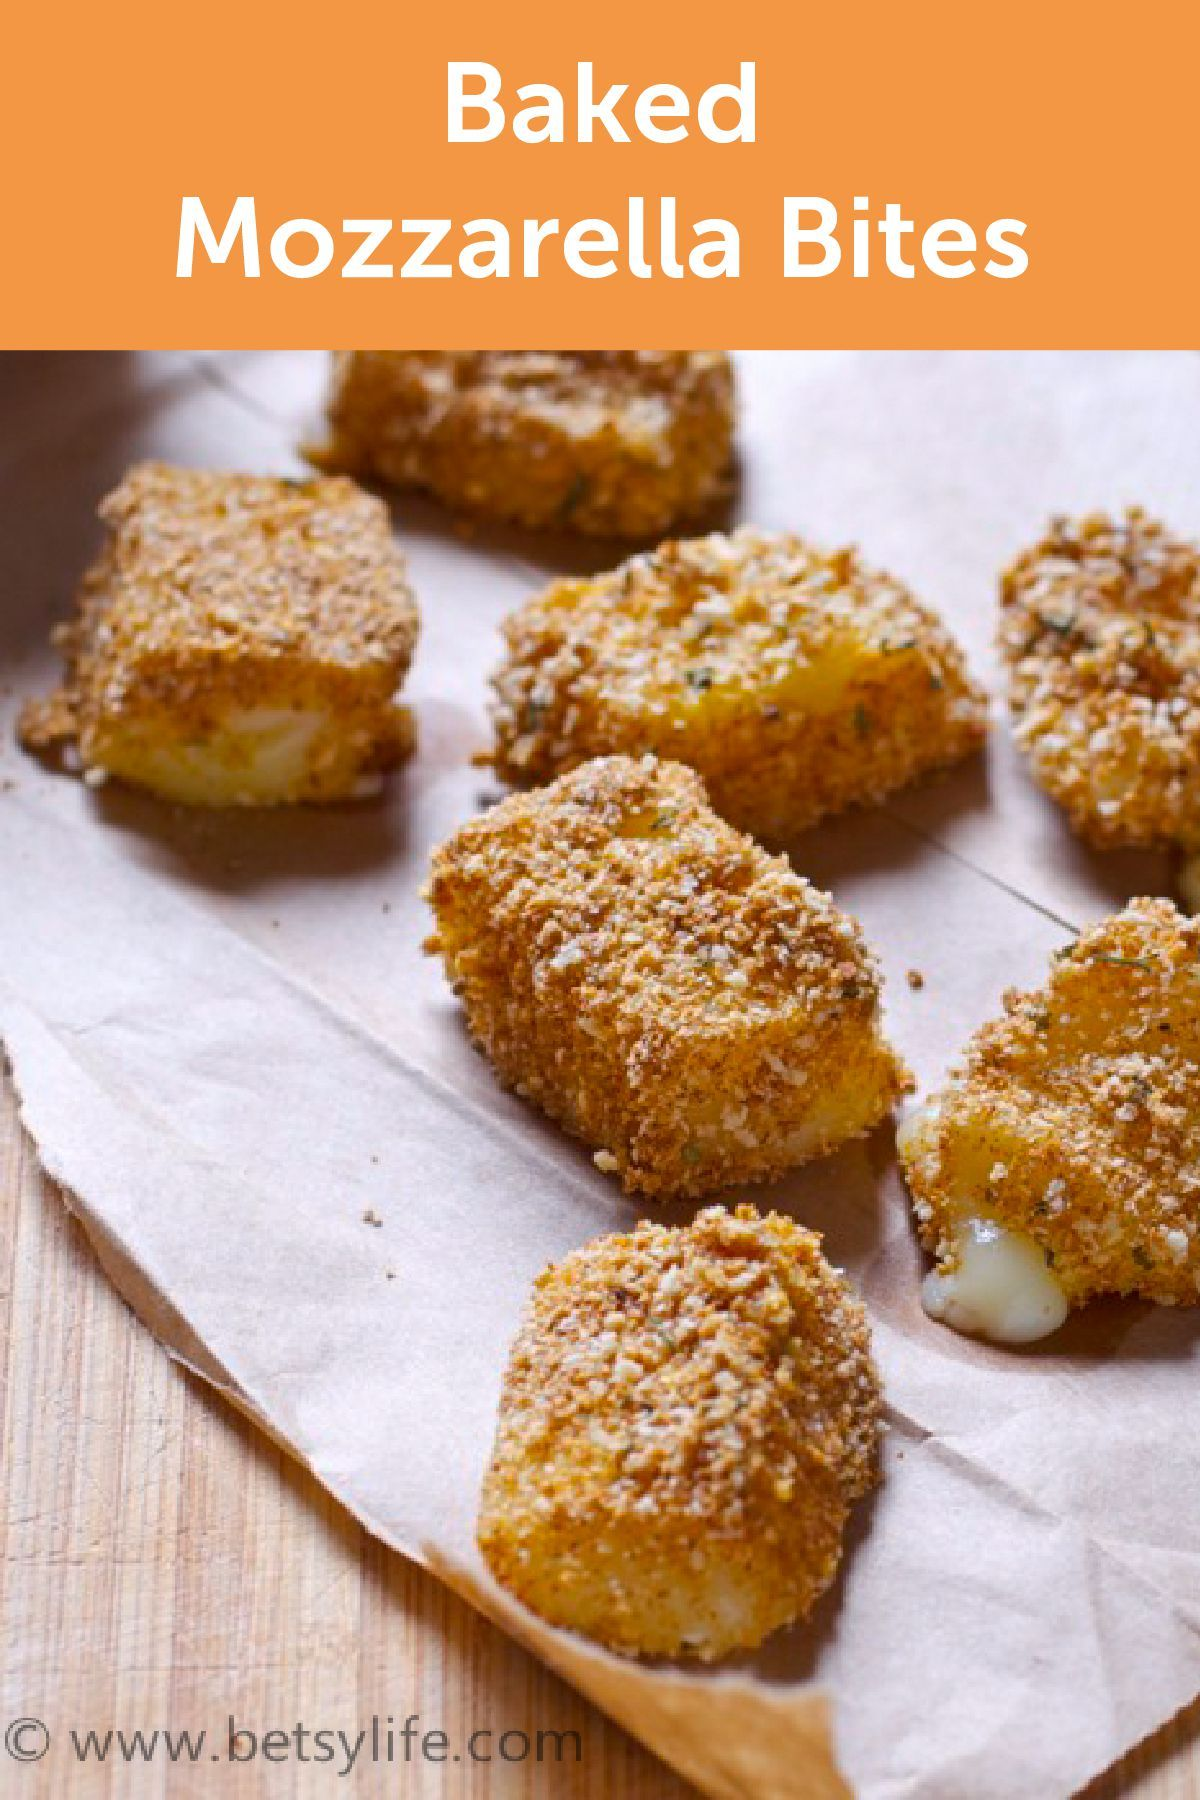 Looking for an easy football recipe? These Baked Mozzarella Bites ...